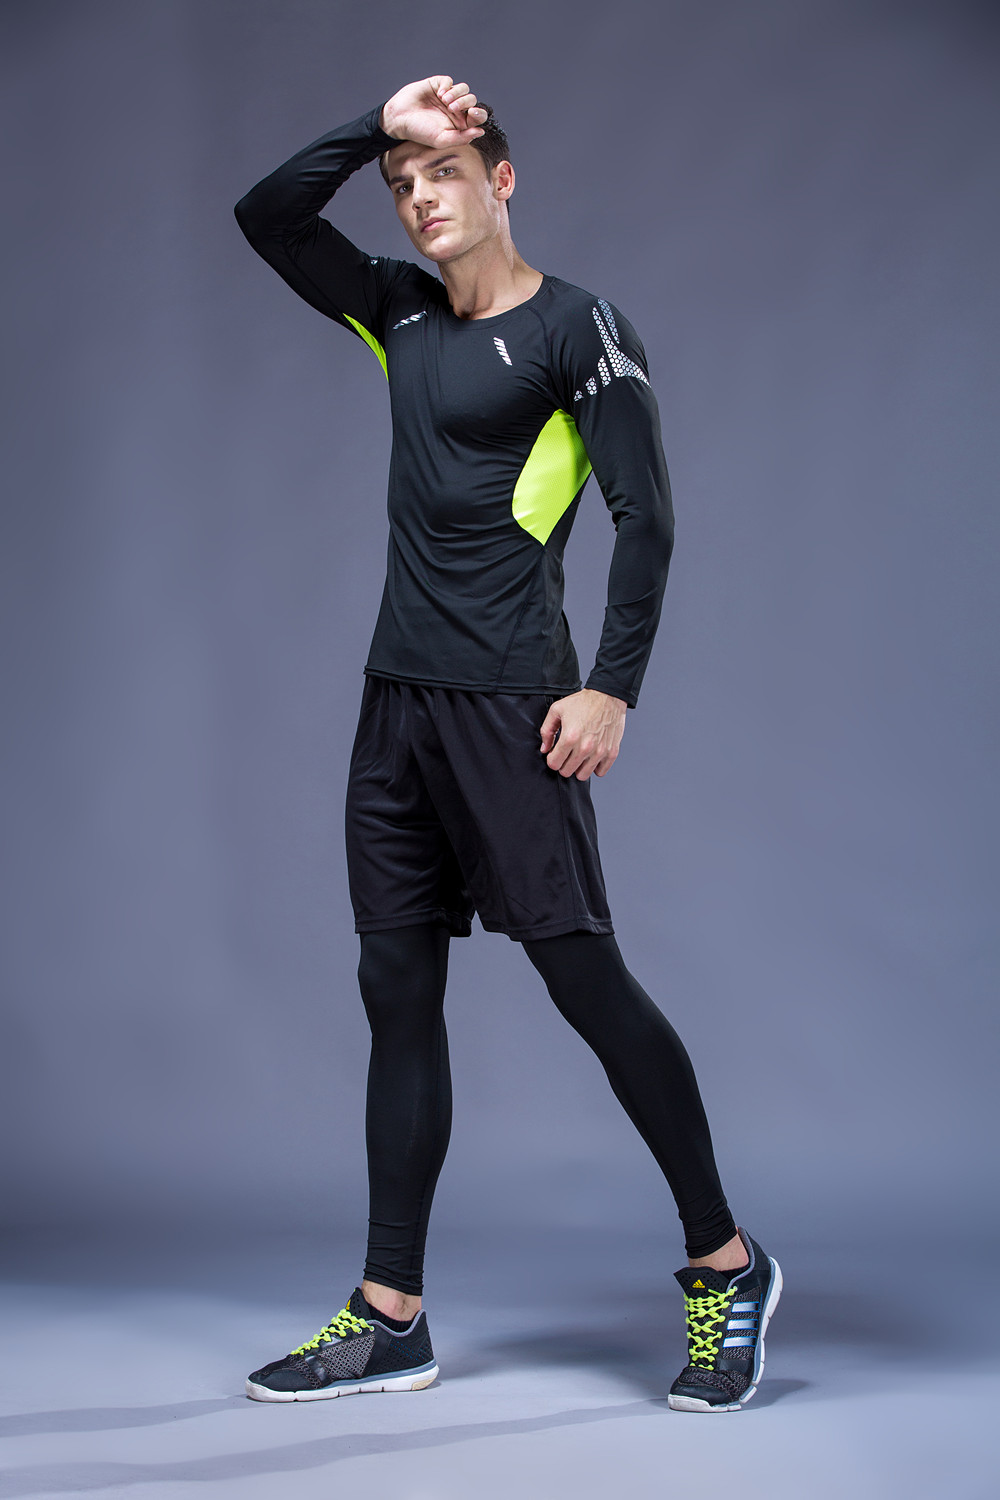 Foto from the right 5 pcs compressions clothes for gym. Men's 5 pcs compression tracksuit sports